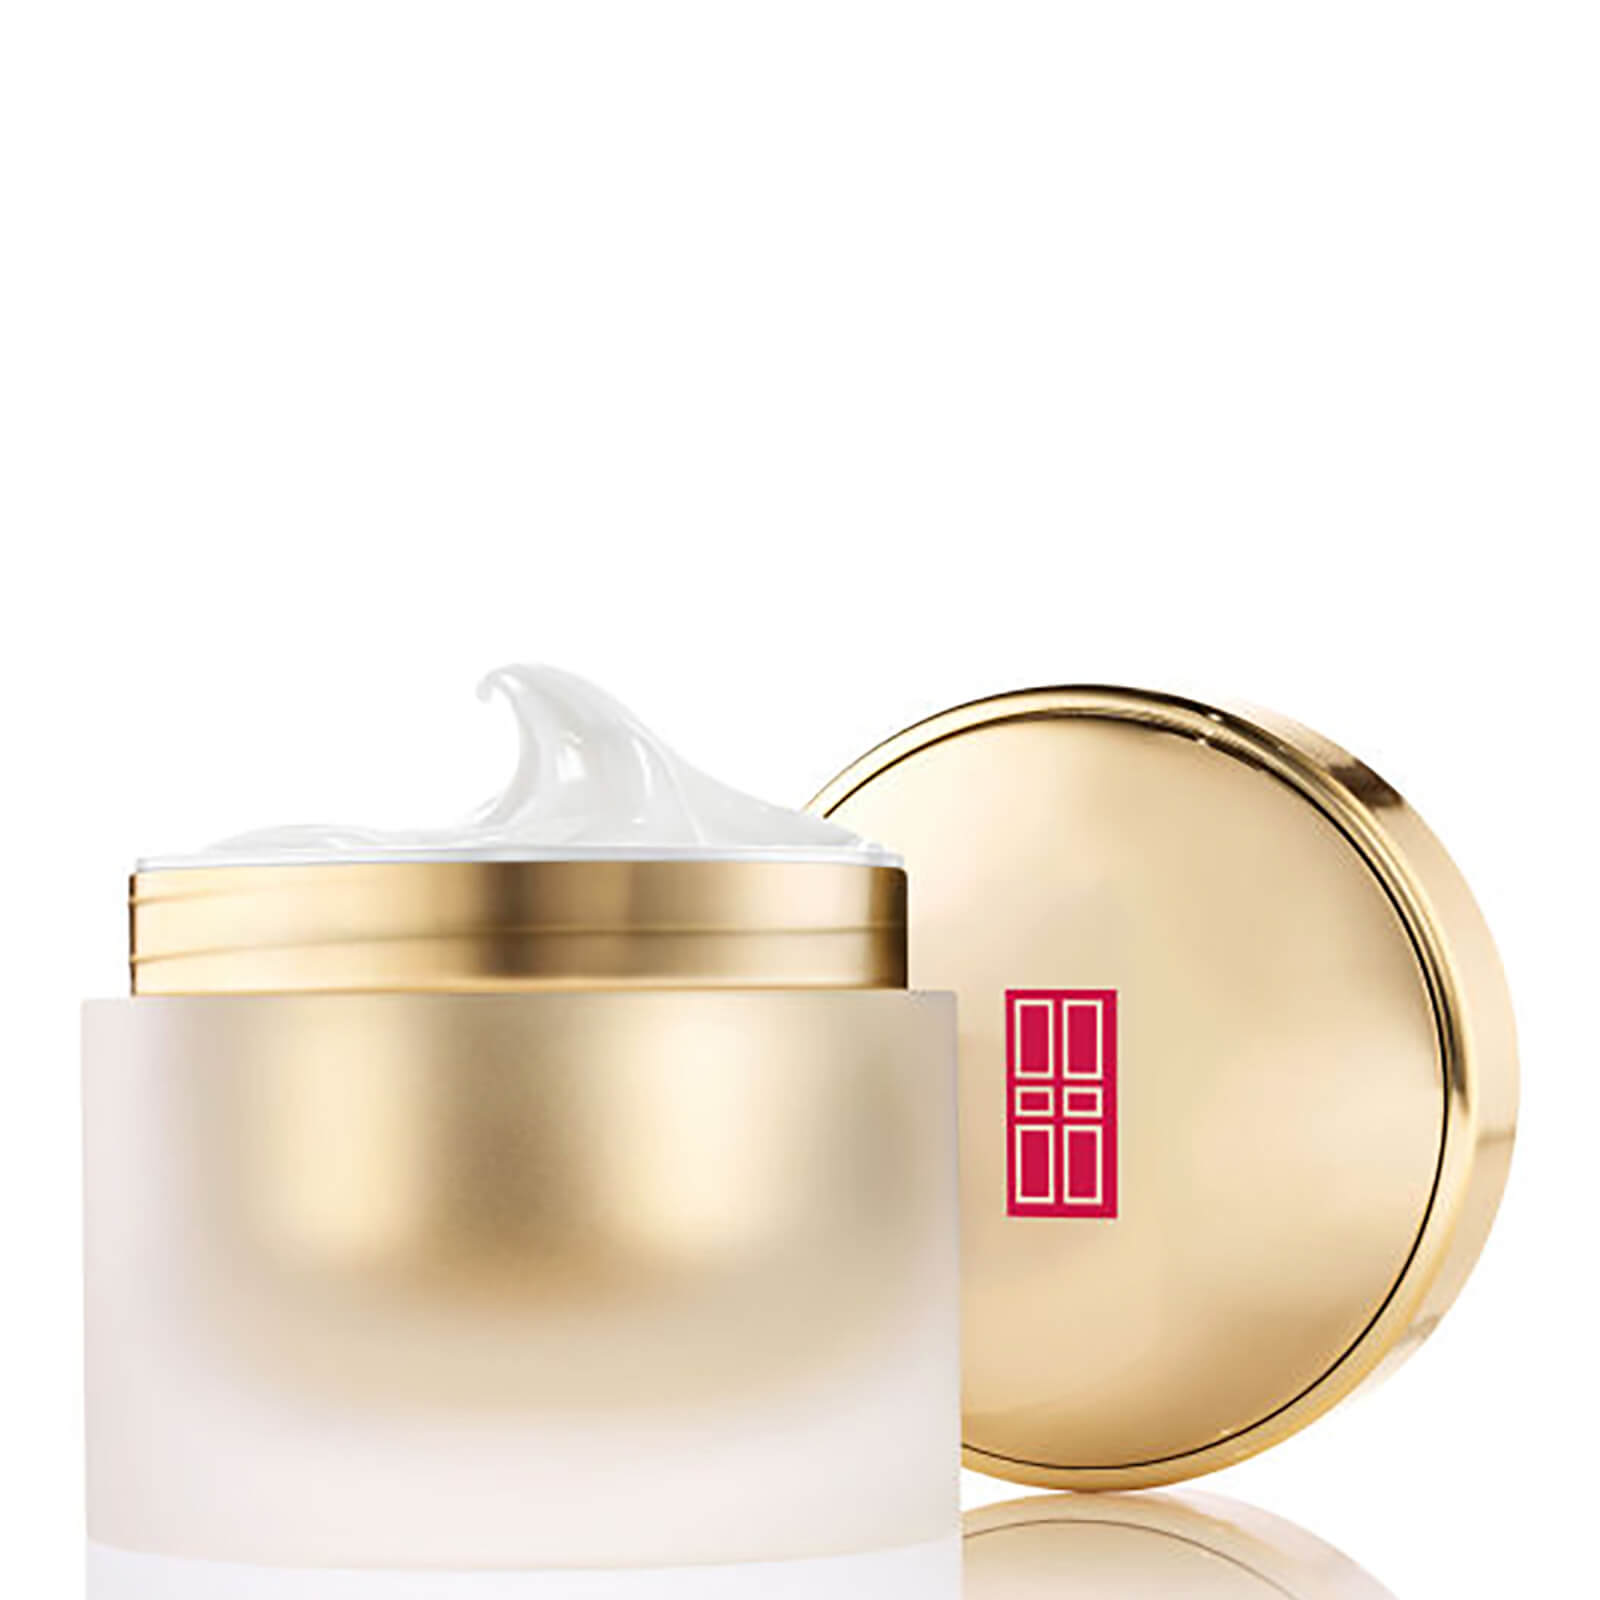 Elizabeth Arden Ceramide Lift and Firm Moisture Lotion SPF30 50ml